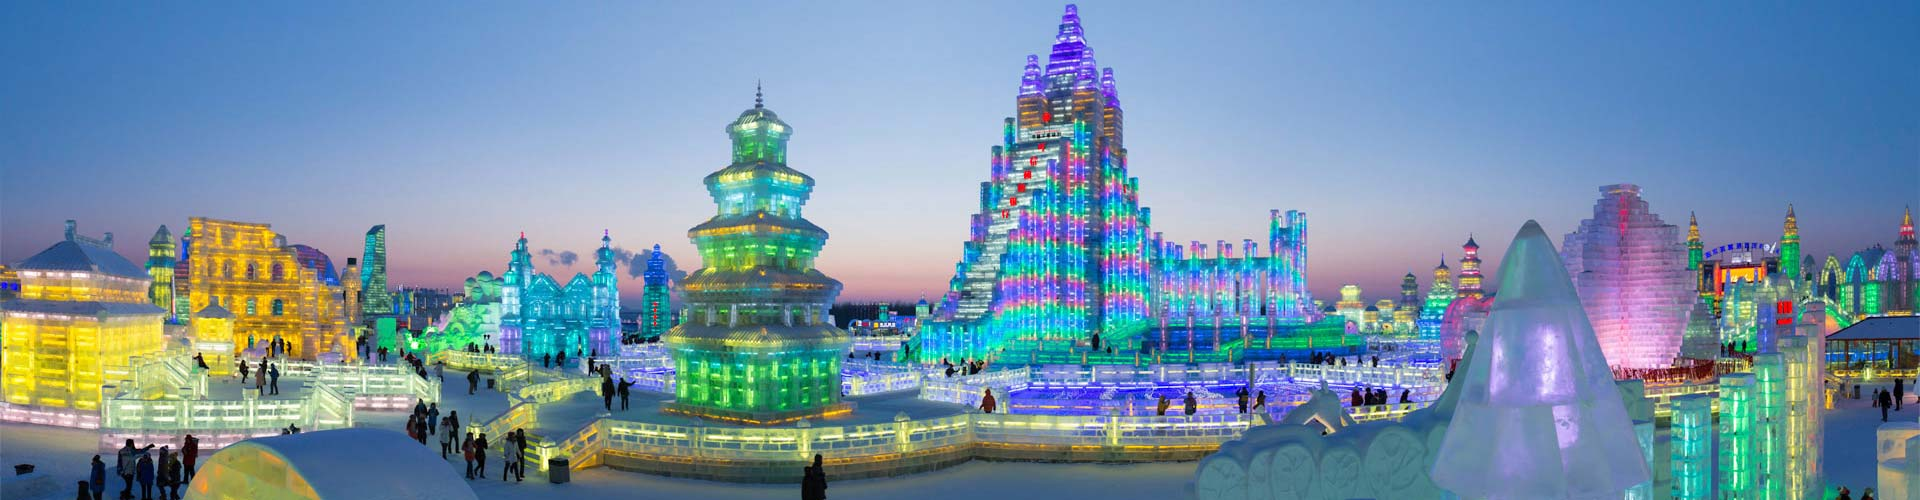 3-Day 2-Night Harbin City Tour Package